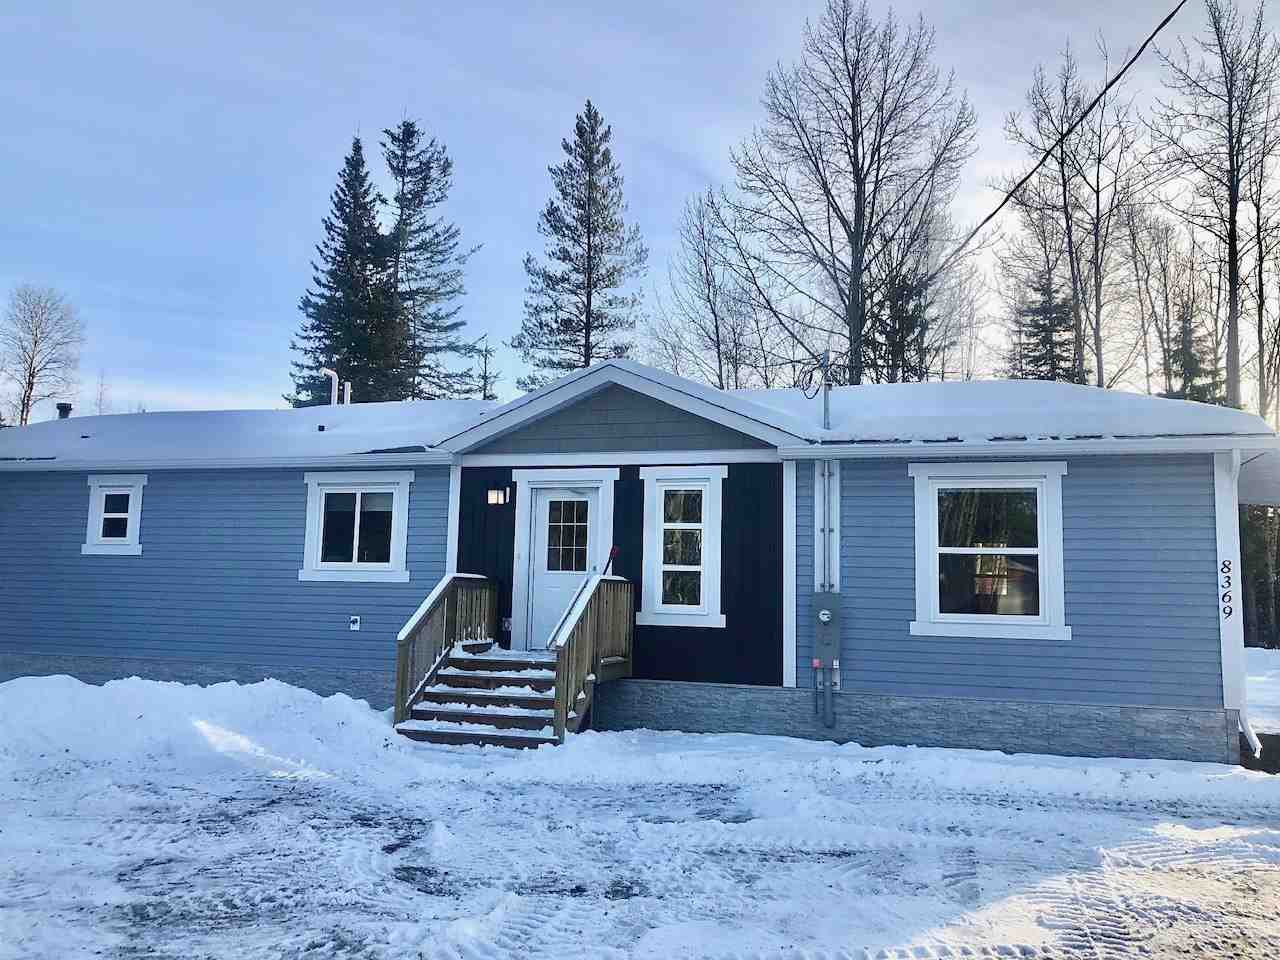 Main Photo: 8369 CANTLE Drive in Prince George: Western Acres Manufactured Home for sale (PG City South (Zone 74))  : MLS®# R2528020